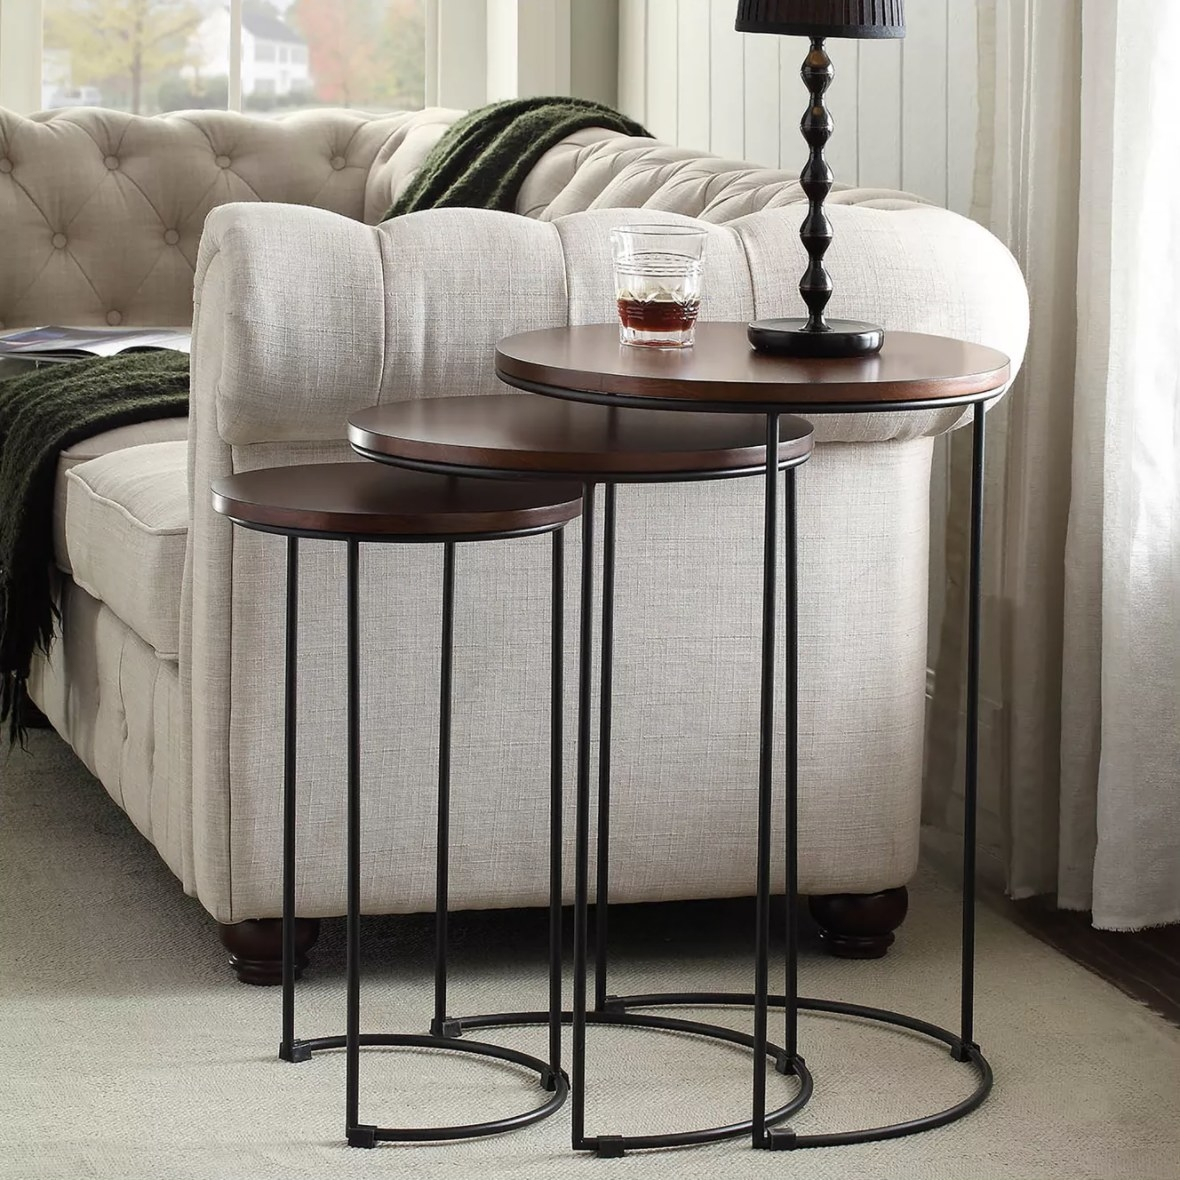 A set of three circular nesting tables with wooden top and metal legs